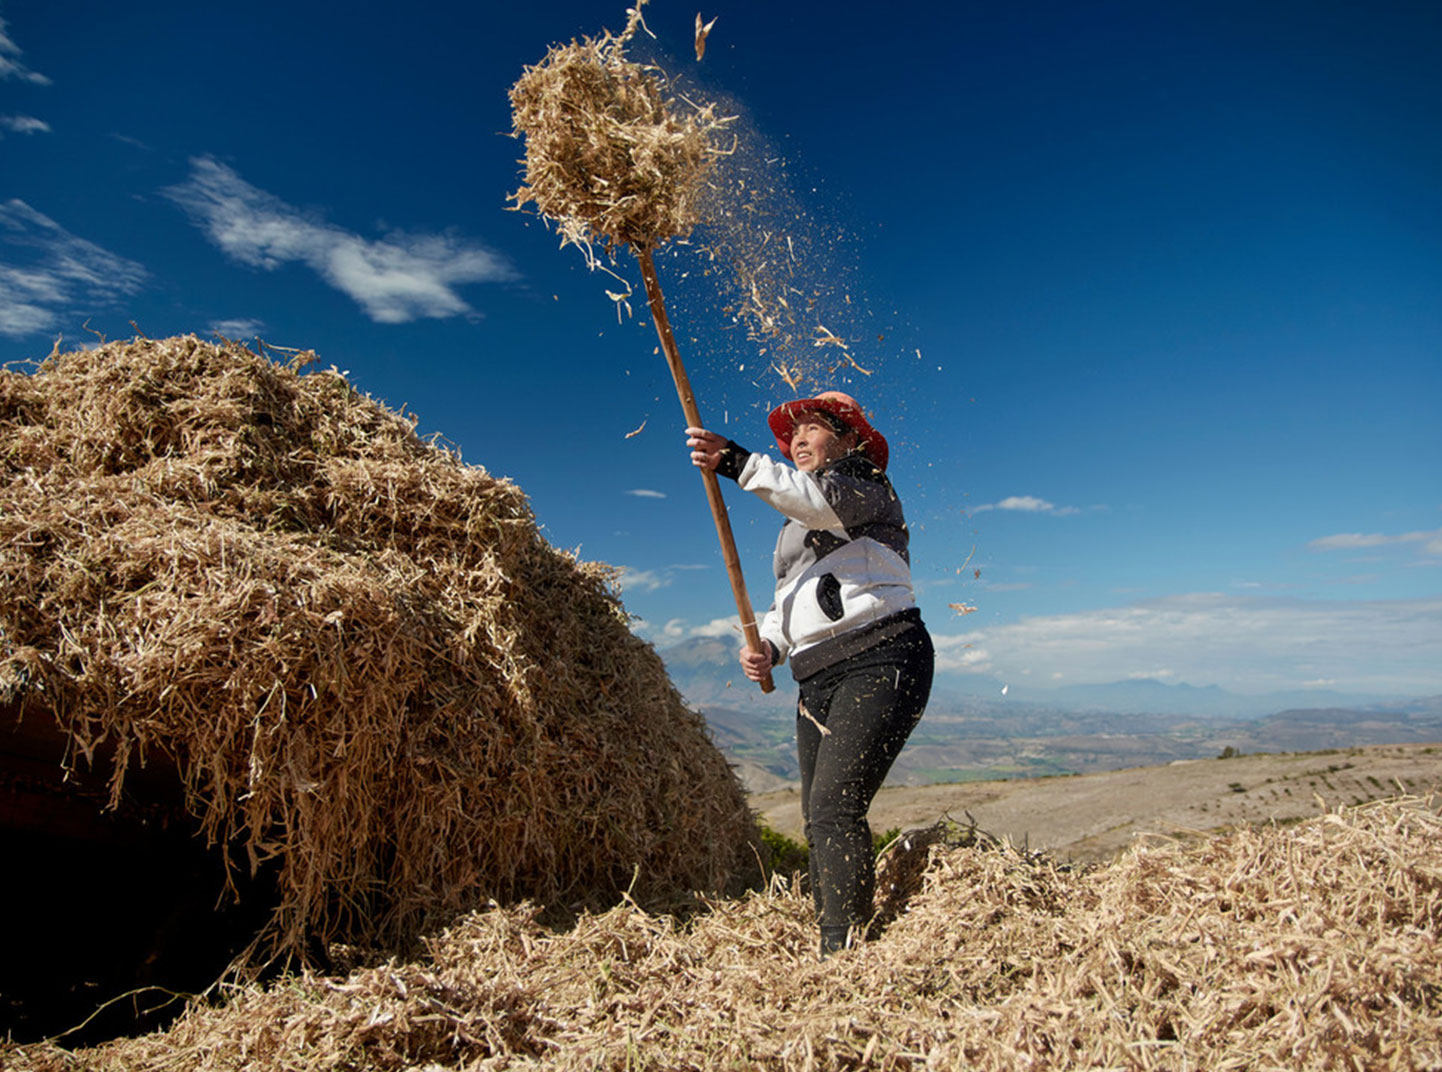 A woman bales hay in a field.